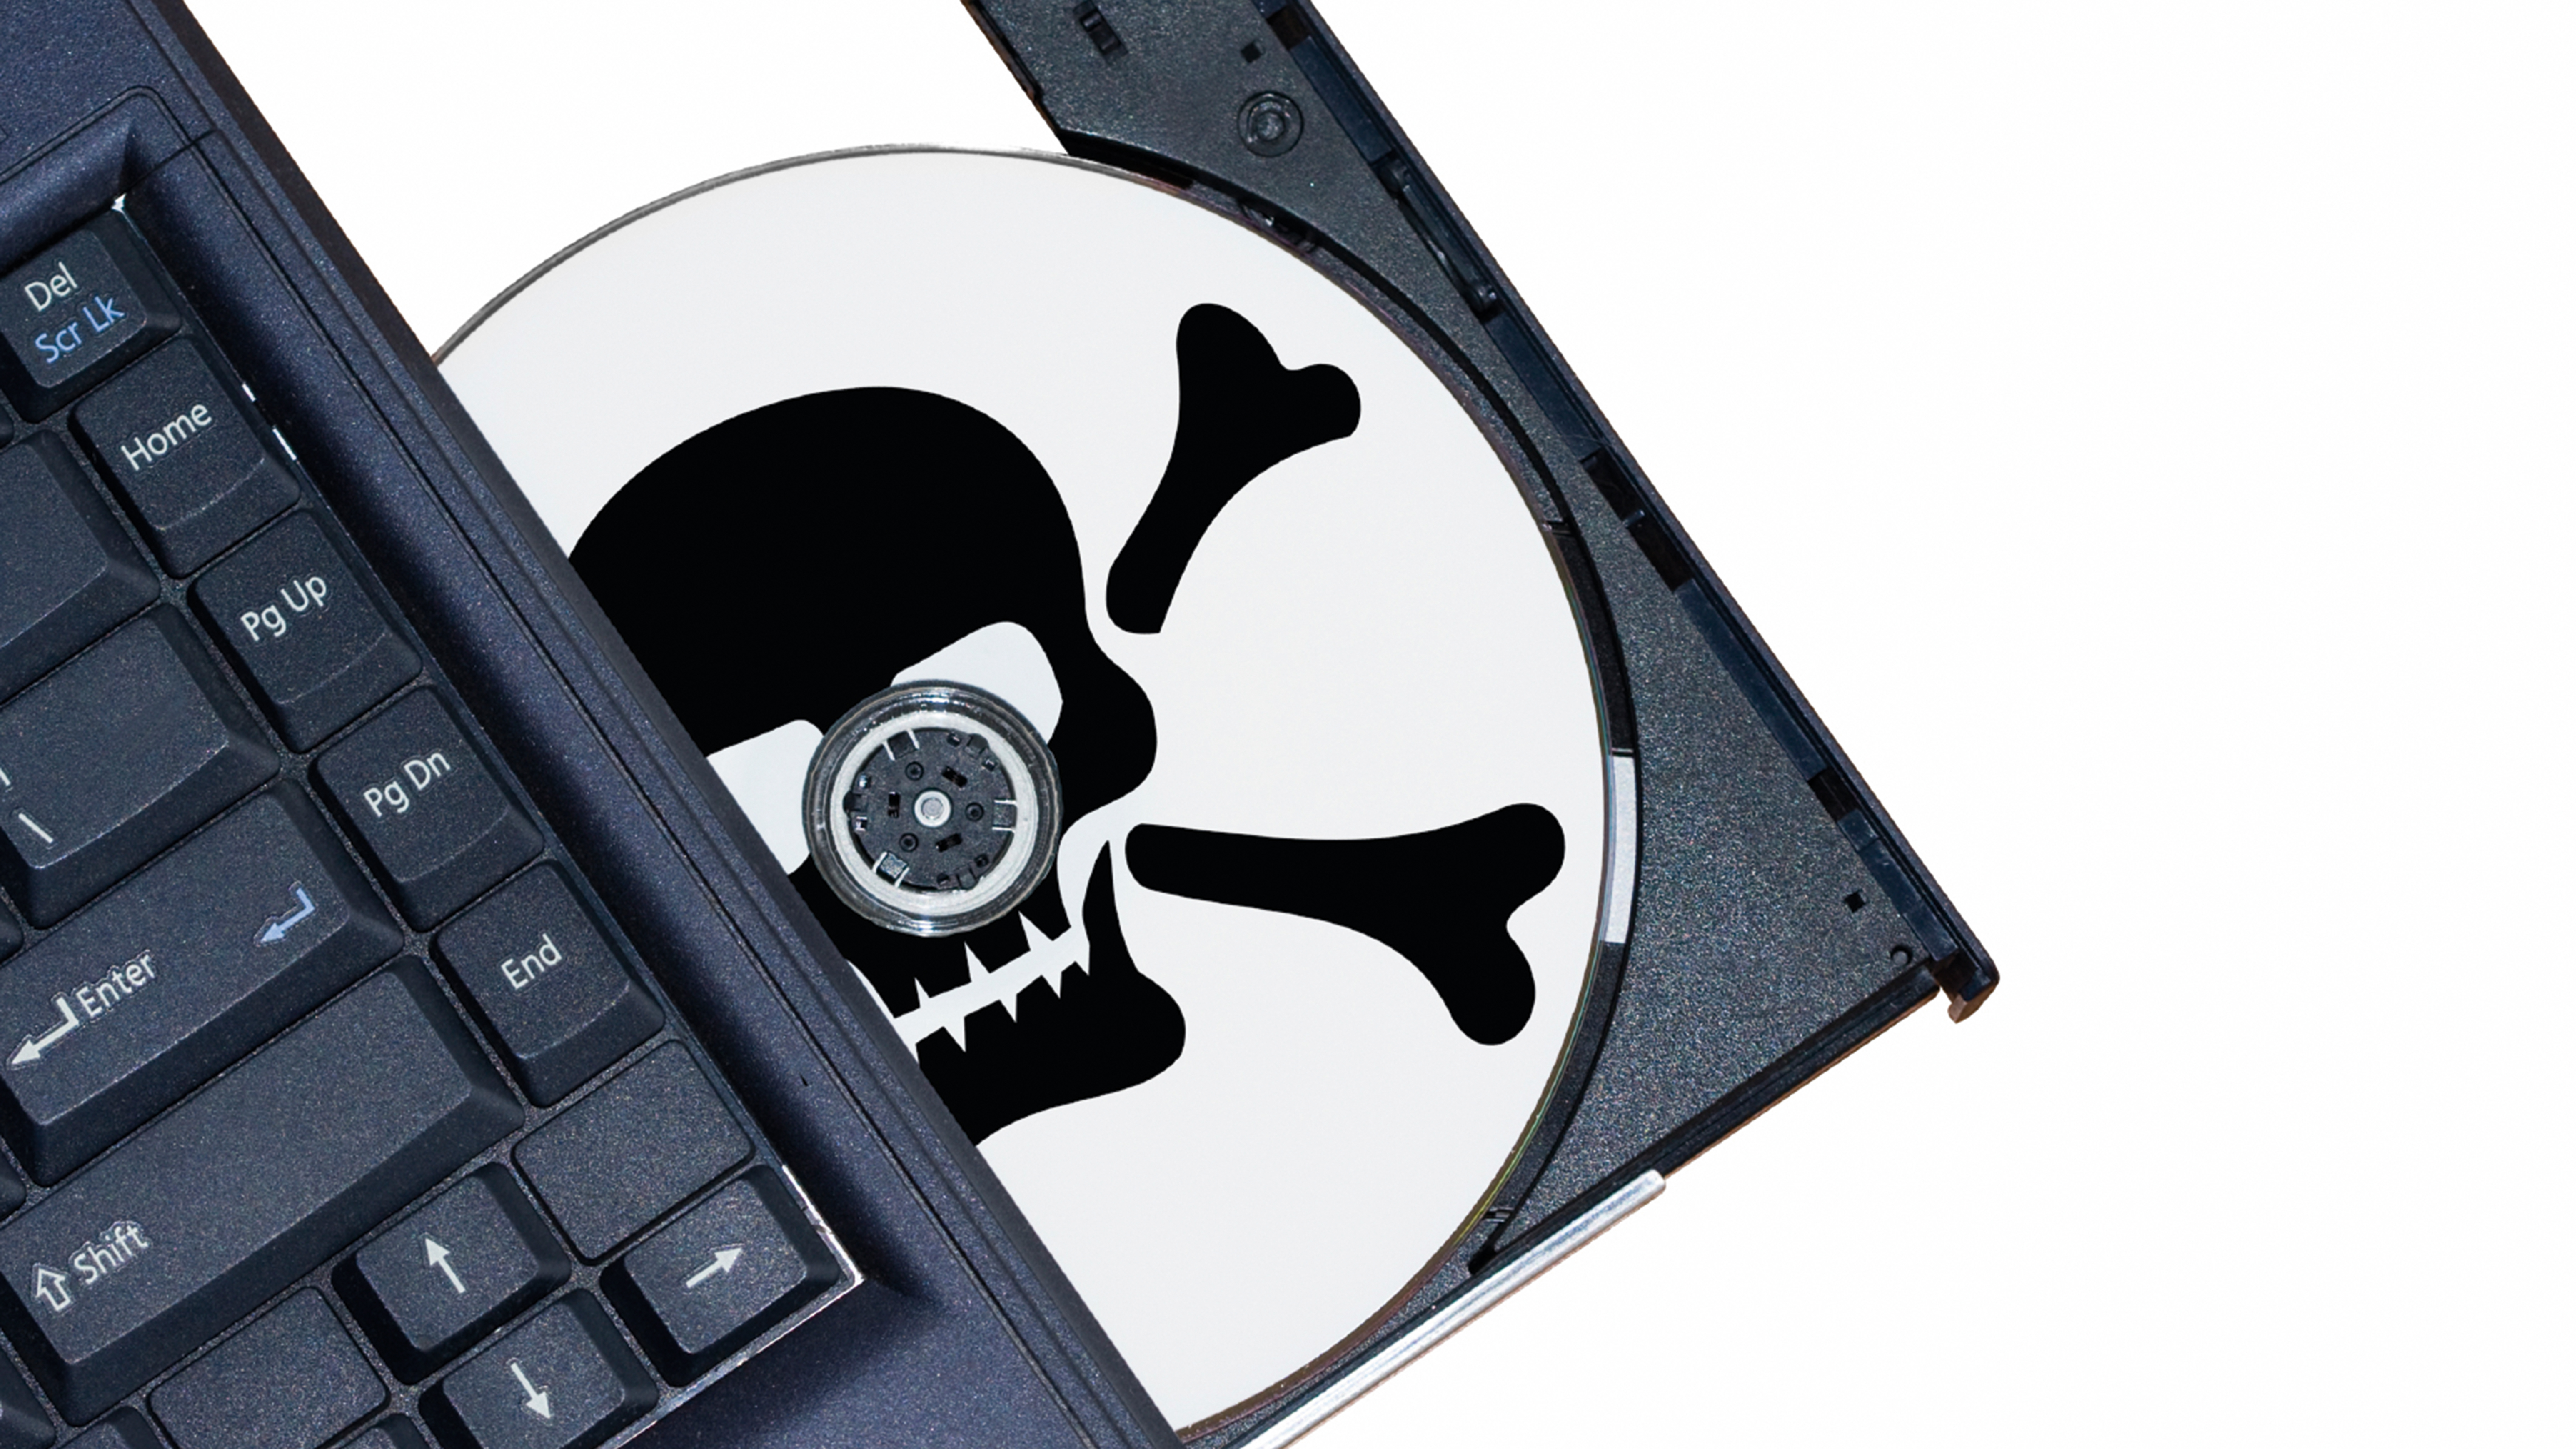 punishment for piracy in india